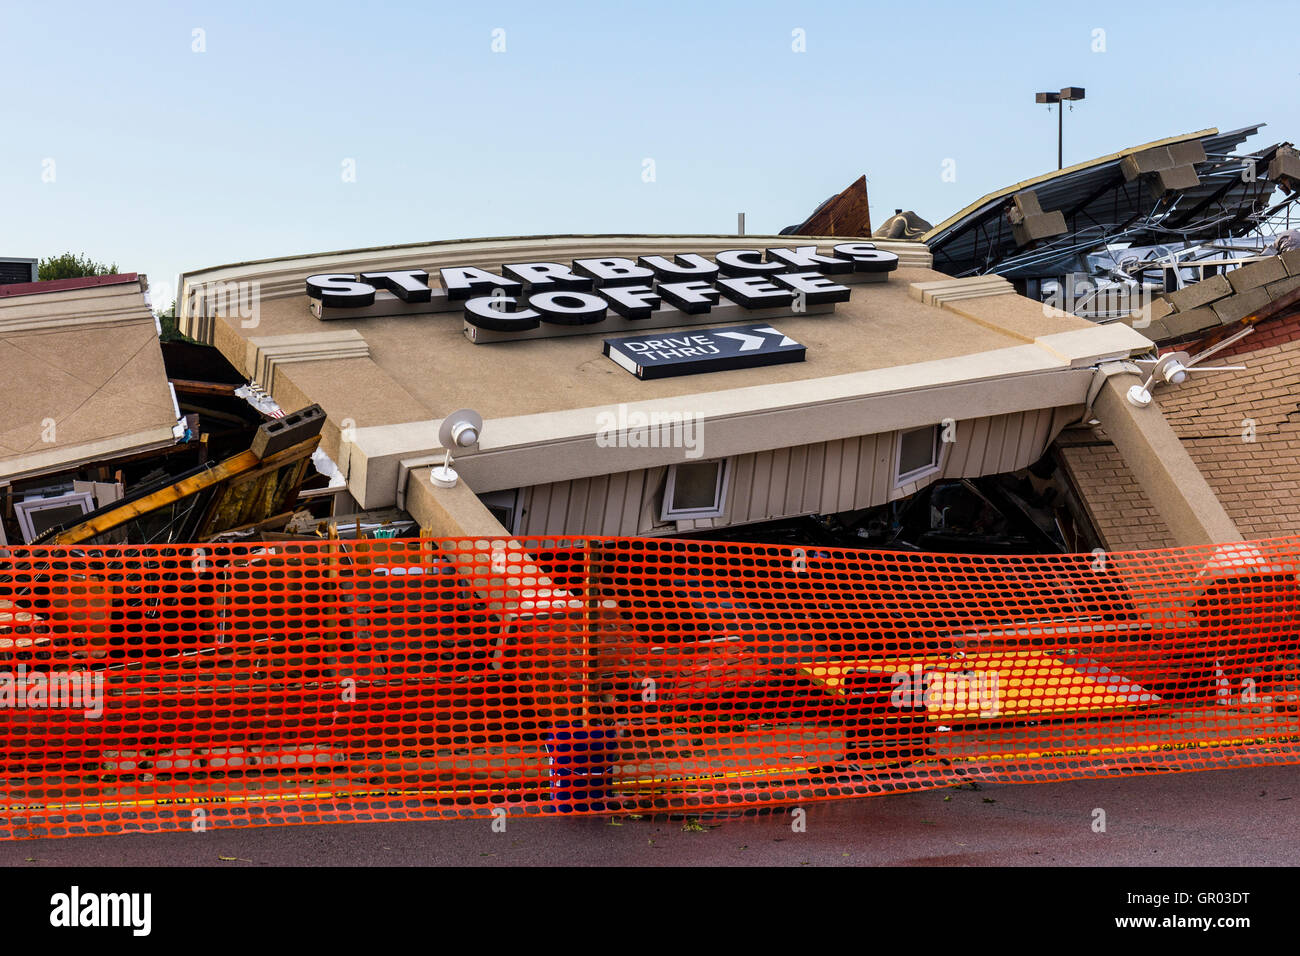 Kokomo - August 24, 2016: Several EF3 tornadoes touched down, one of which destroyed a local Starbucks 1 - Stock Image